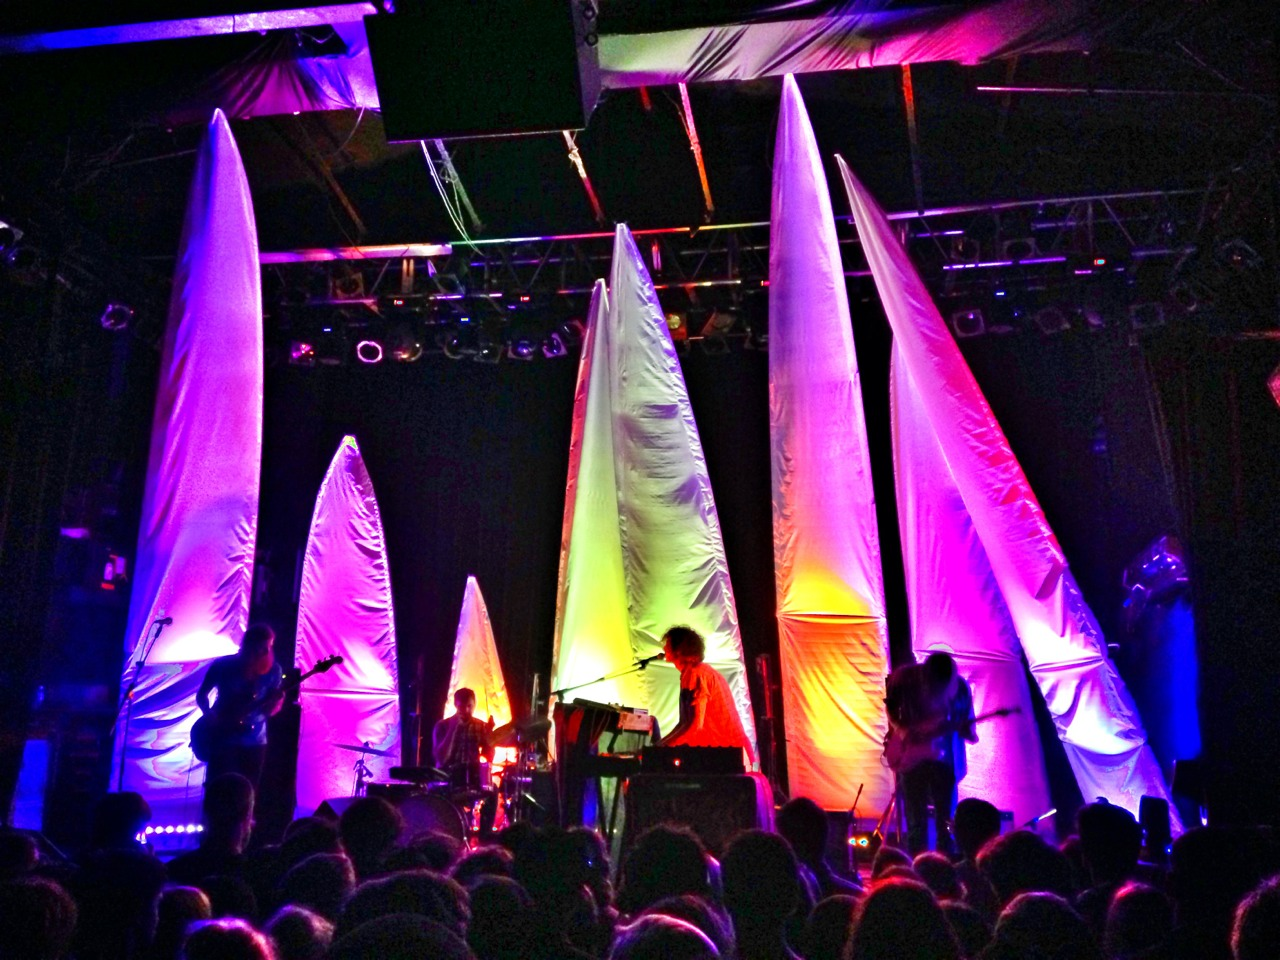 Youth Lagoon put on an amazing show last night